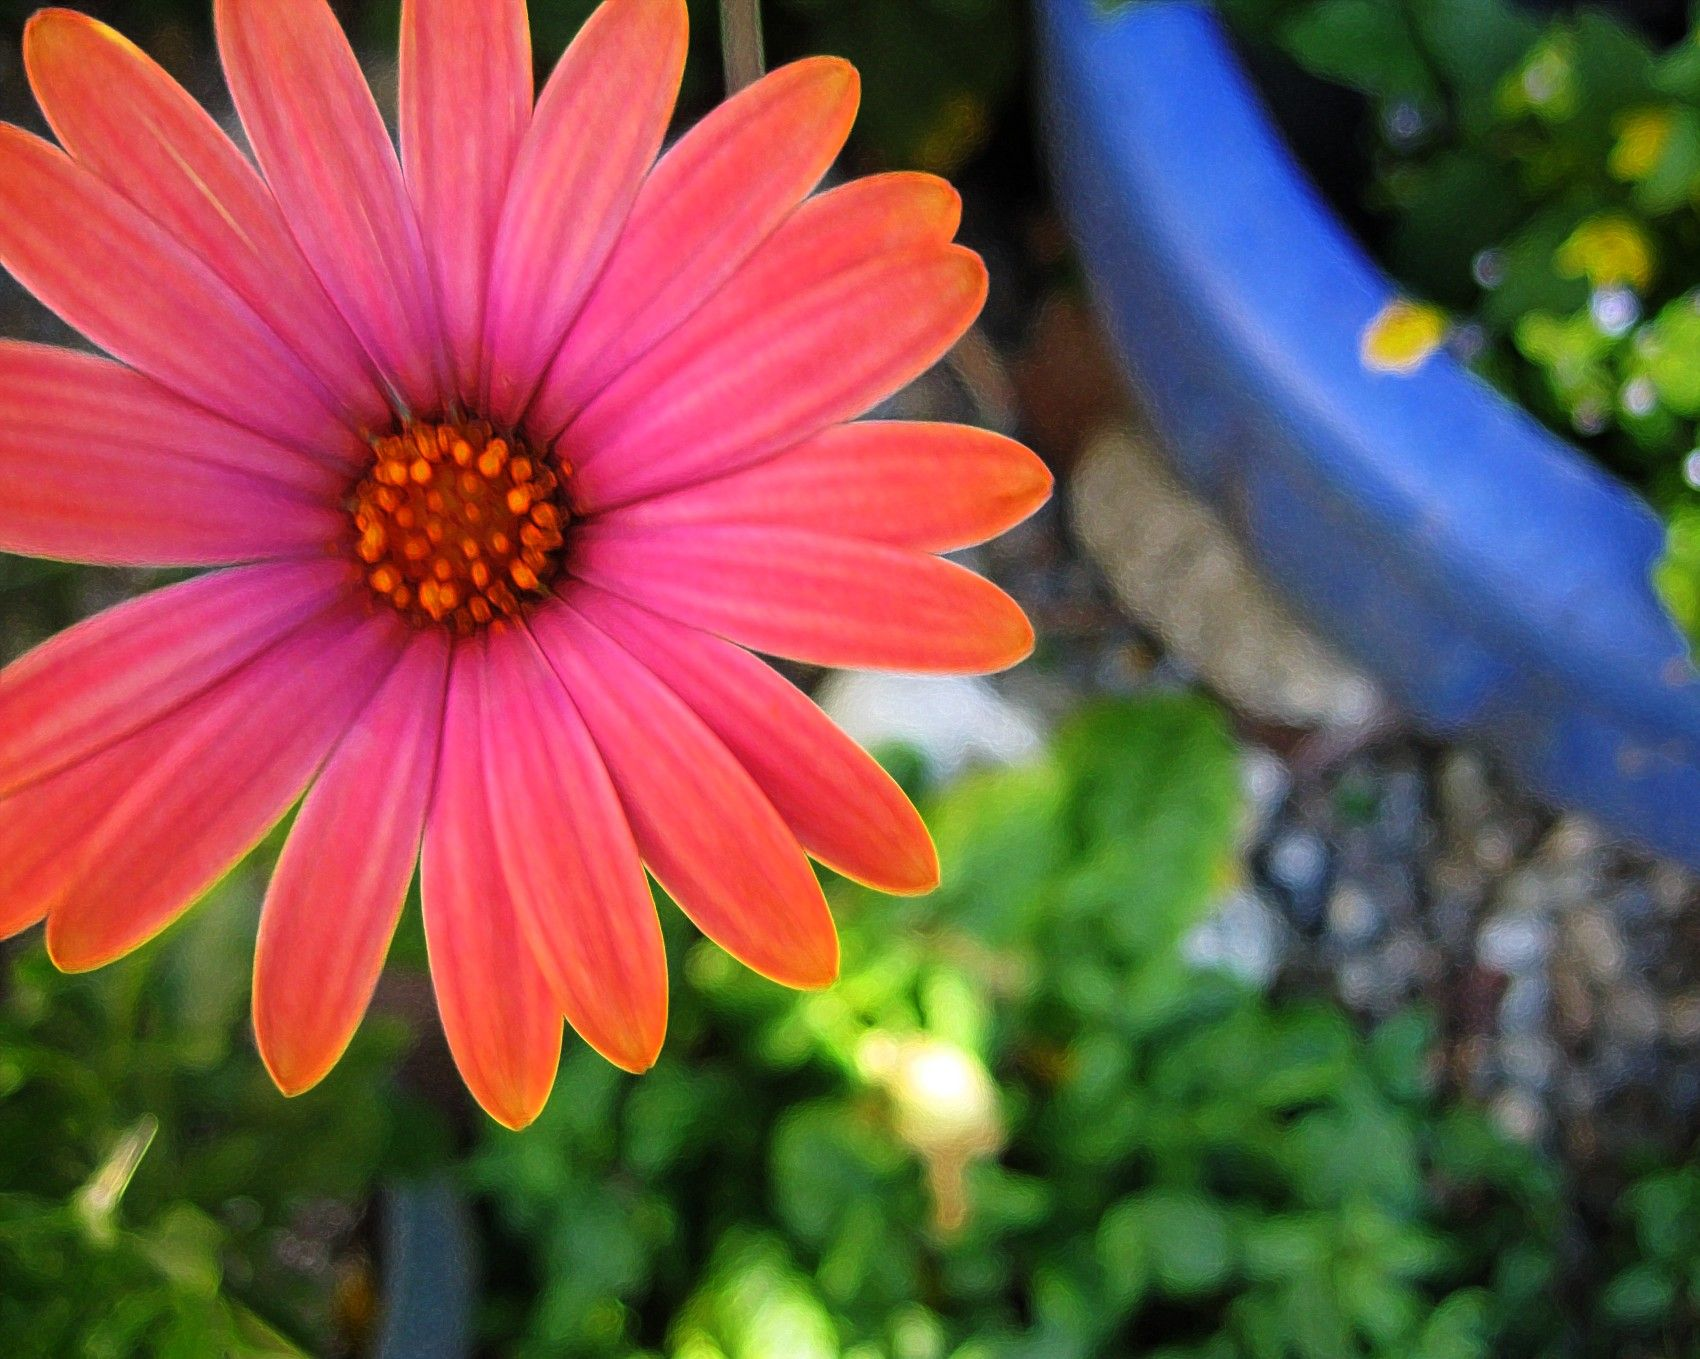 Love, love, love African daisies. Pots of color all summer long.